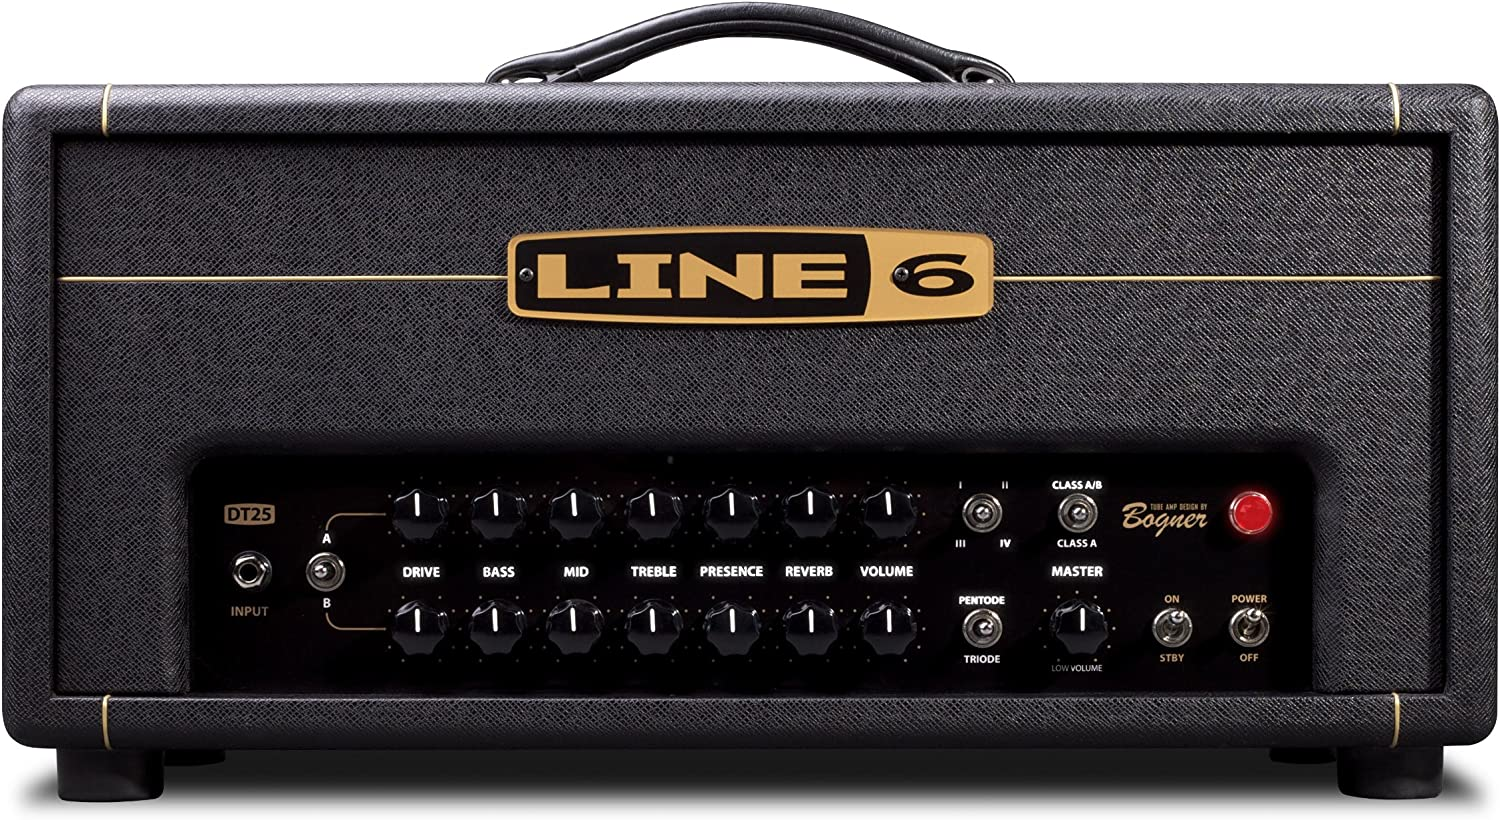 Line 6 99-021-0716 DT25 25W/10W amplificador de guitarra: Amazon ...